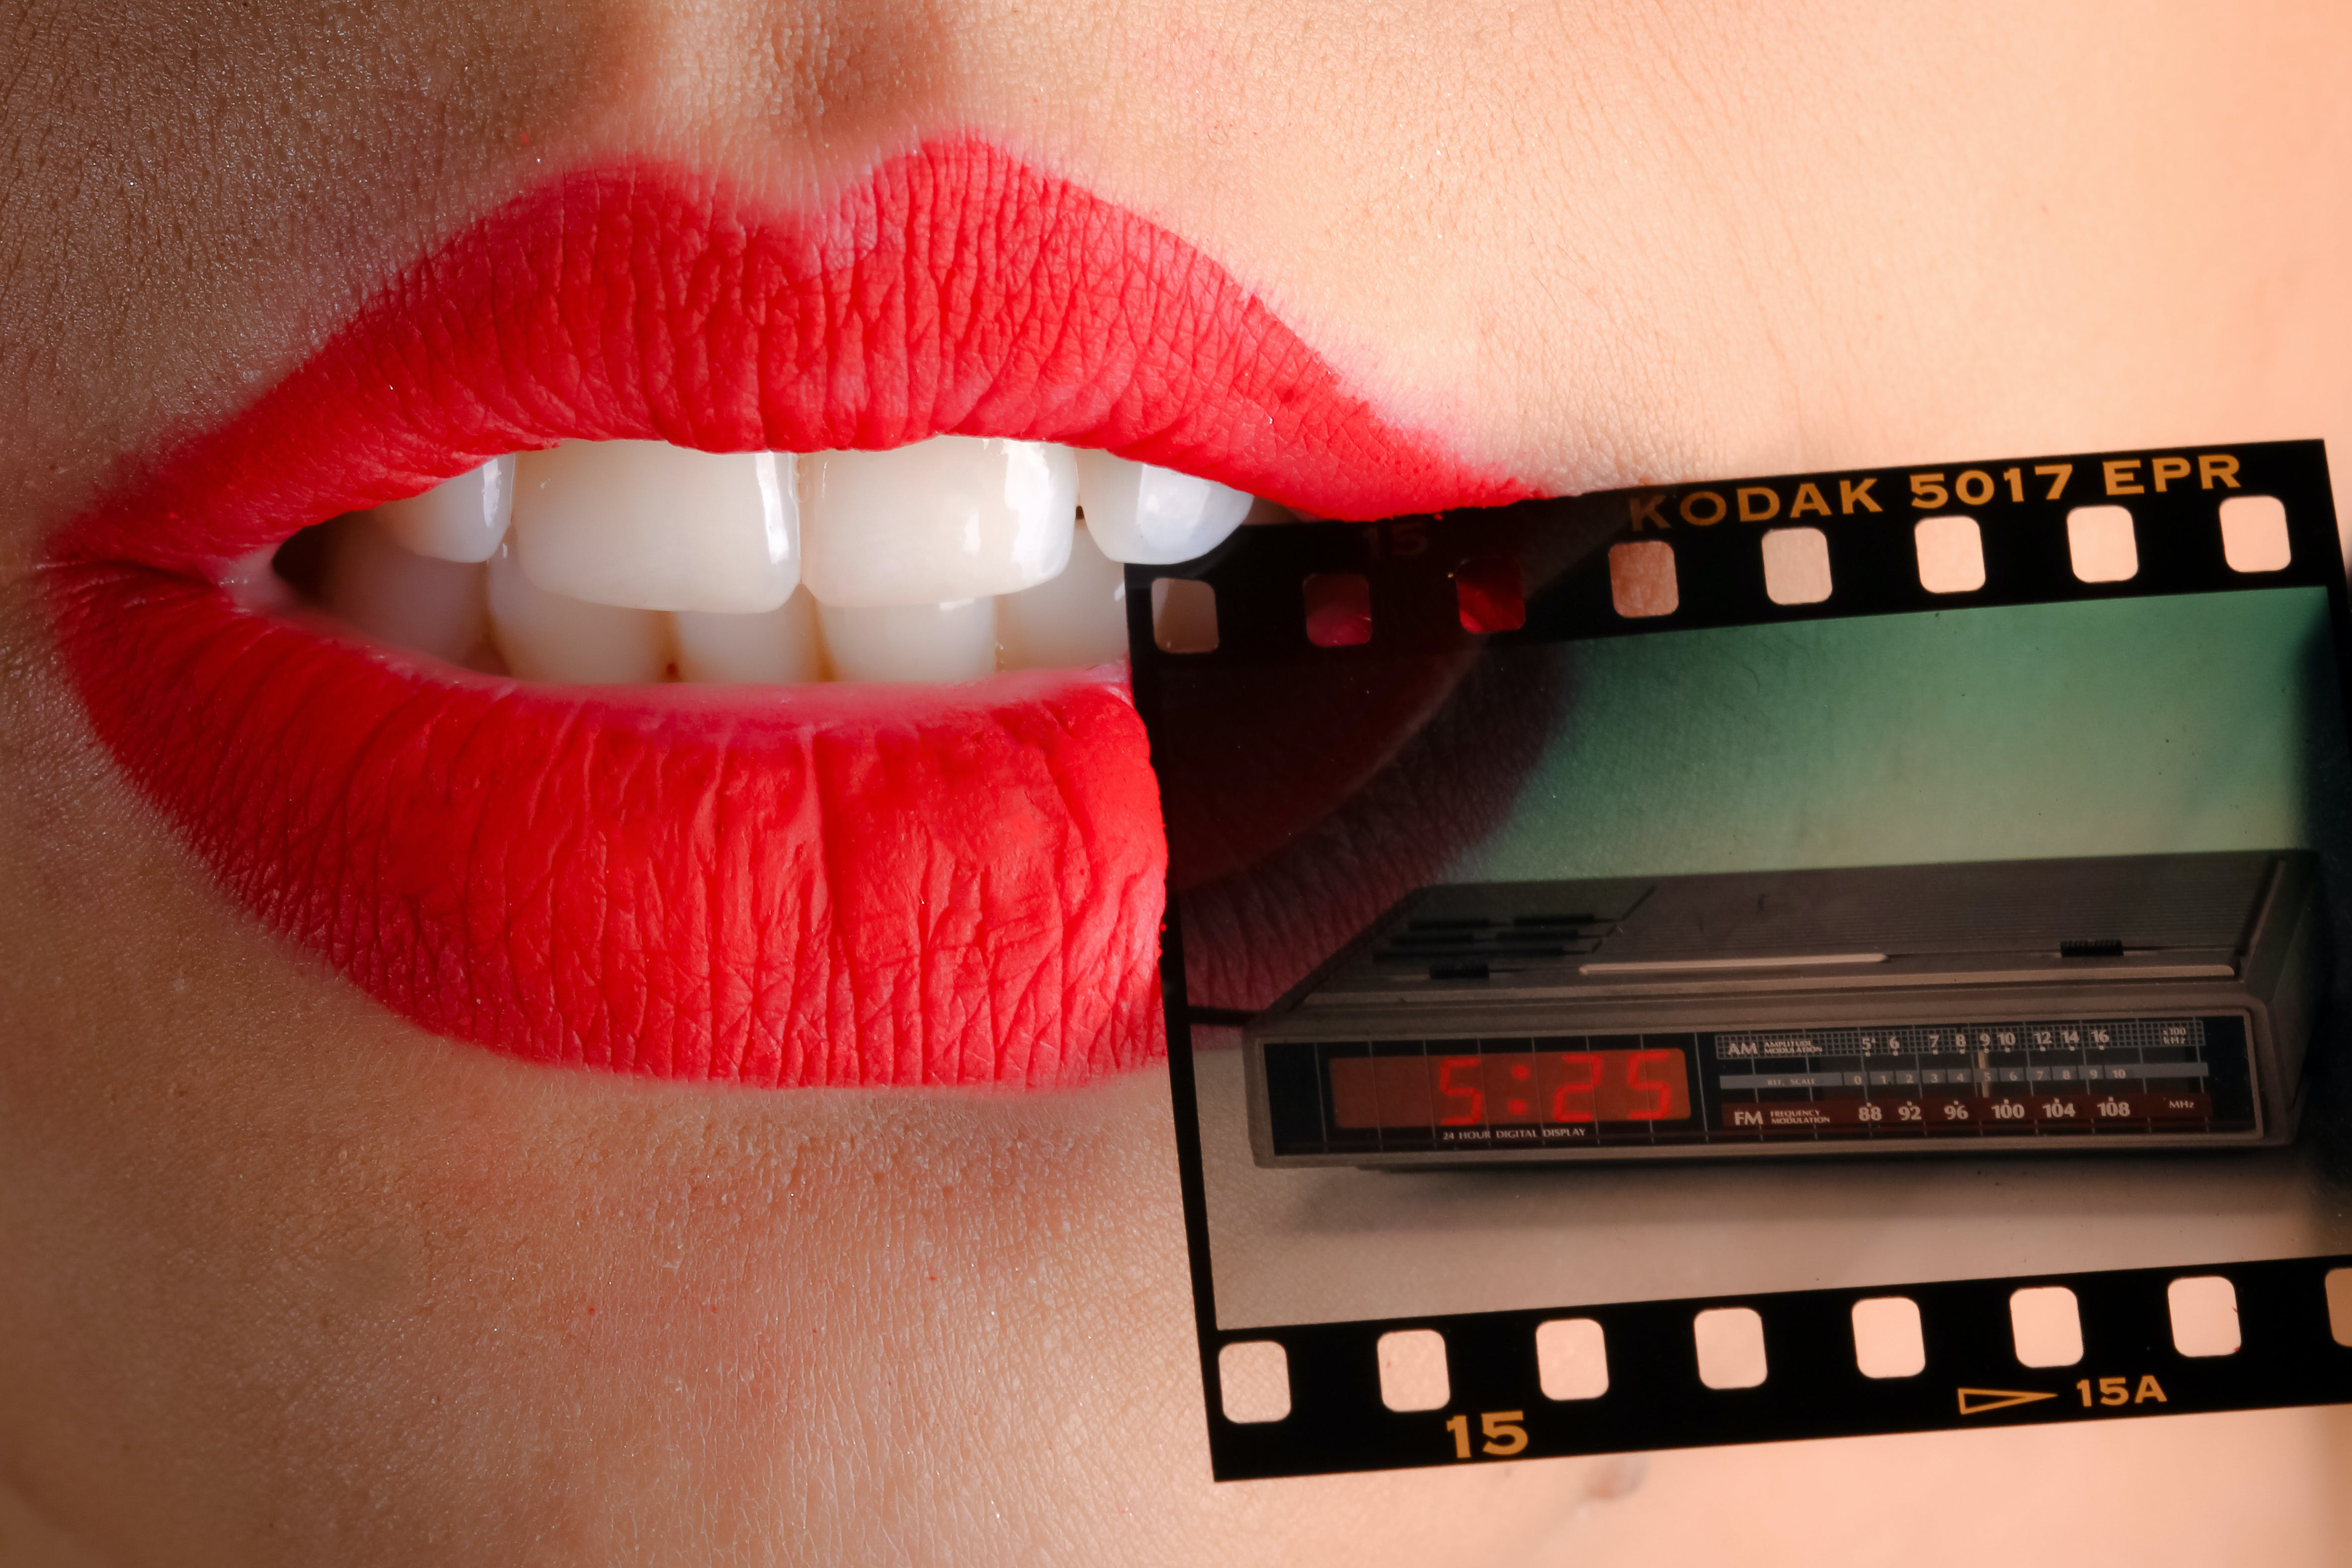 Person Wearing Red Lipstick Biting Film